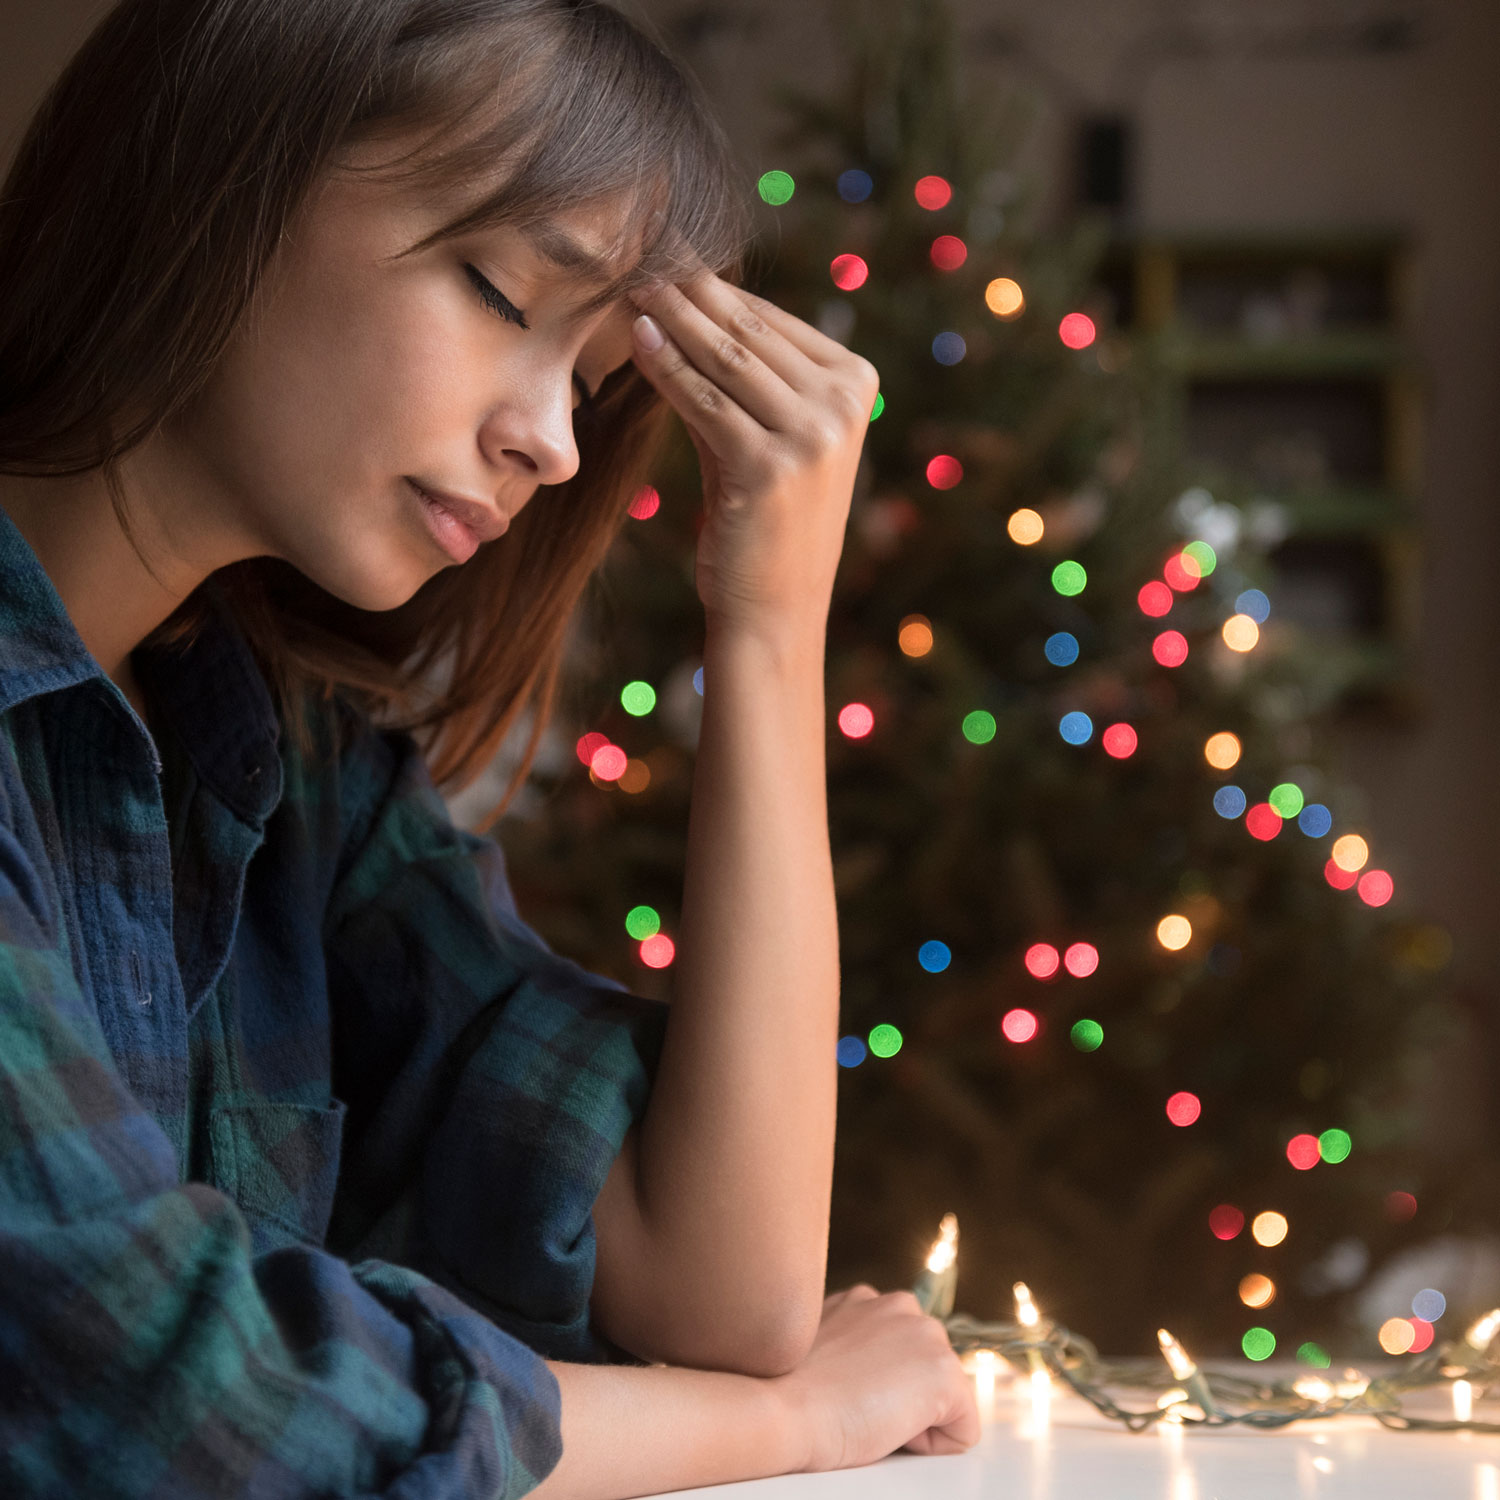 The #1 Way to Reduce Holiday Stress, According to Experts